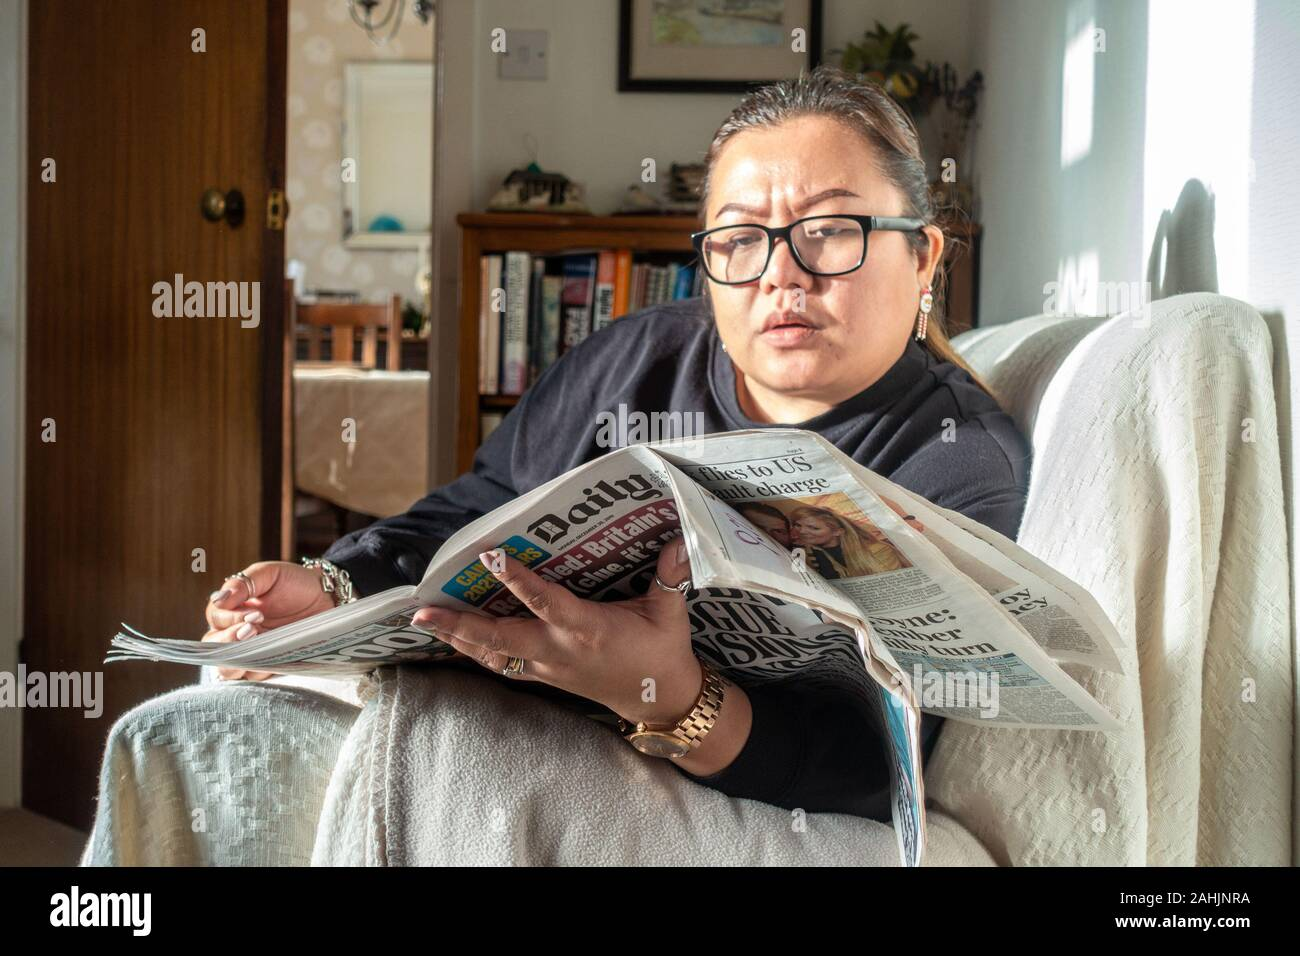 a-lady-sits-on-a-settee-and-reads-a-newspaper-2AHJNRA.jpg